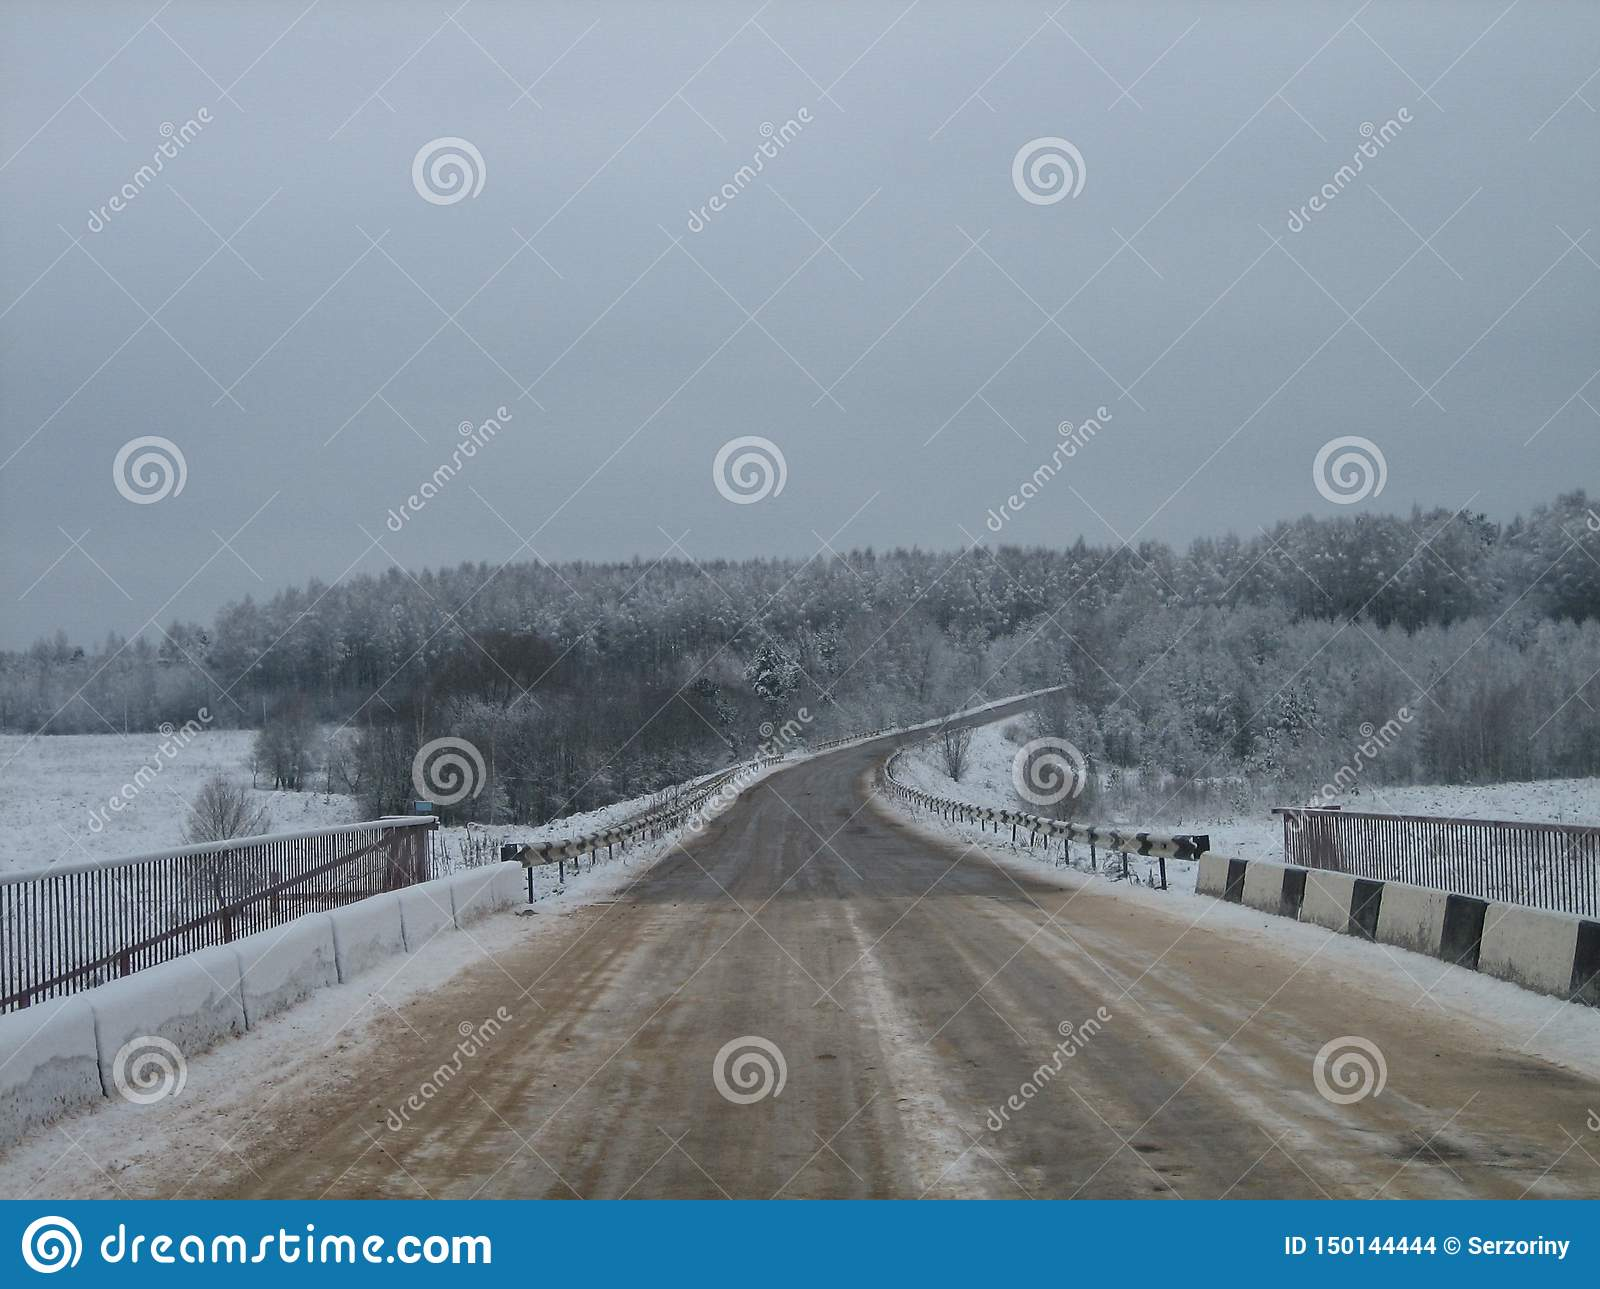 Road bridge over the river in the forest edge in winter on a gray cloudy day